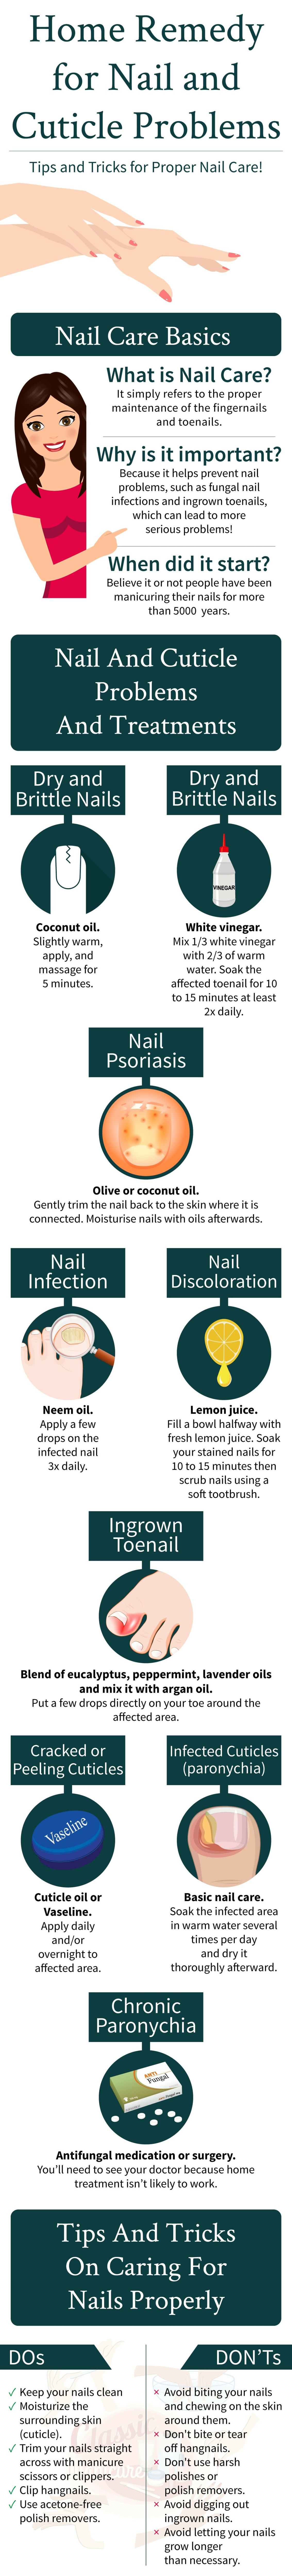 nail care infographic